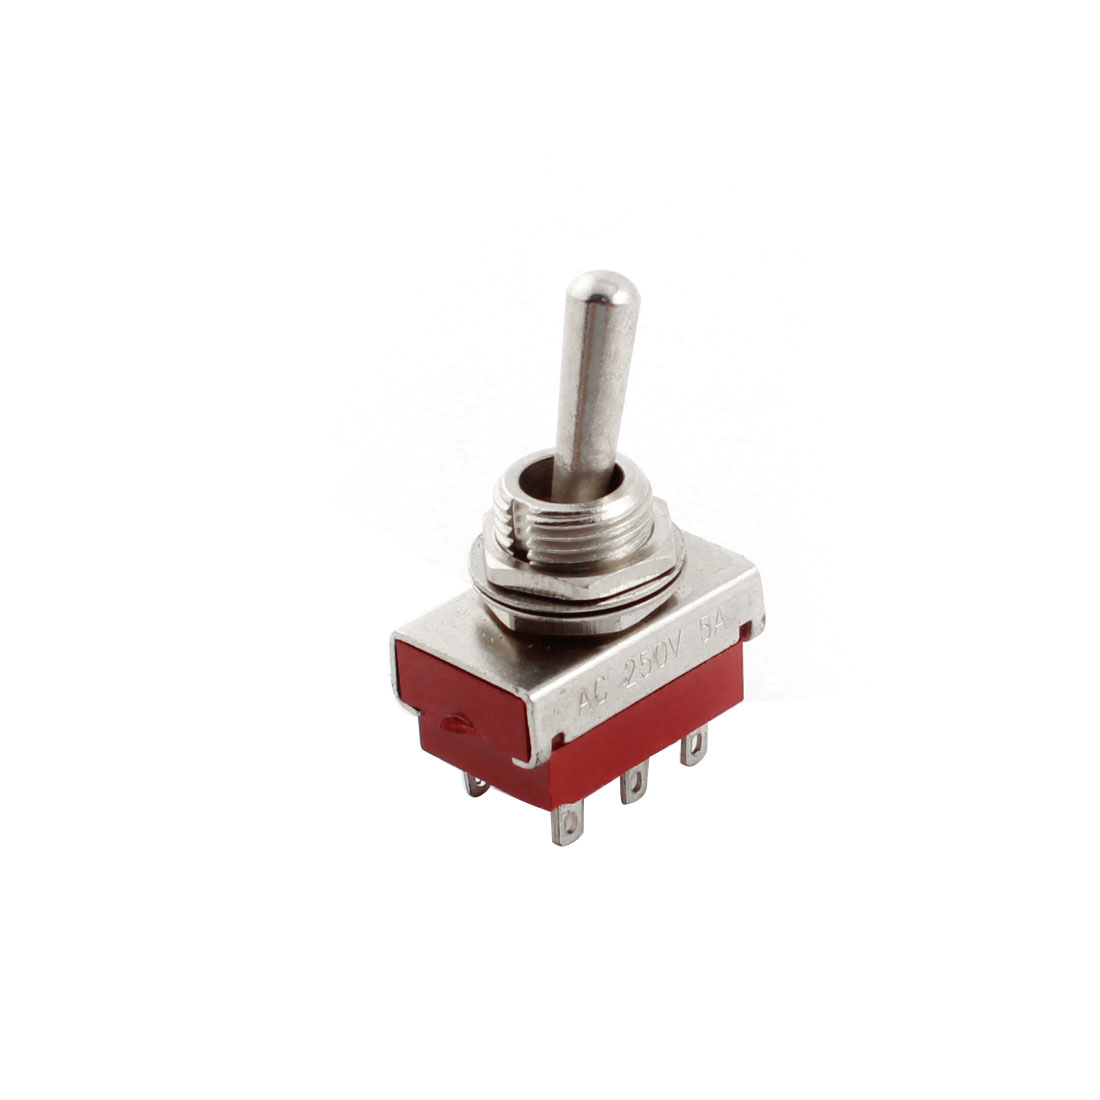 AC 250V 5A 12mm Dia Thread DPDT 2 Position ON/ON Toggle Switch